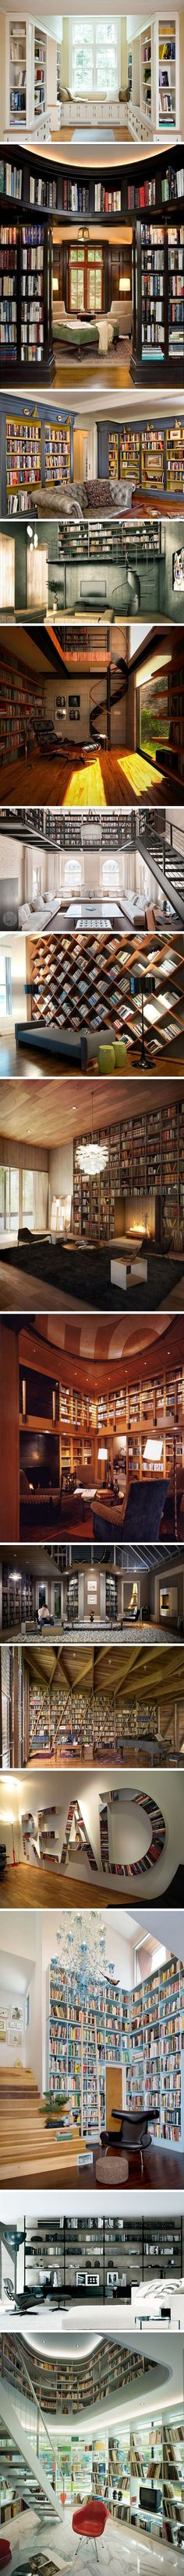 Book nooks/Library of my dreams- various kinds of heaven More - Amazing Home Libraries Library Room, Dream Library, Library Ideas, Library Design, Casa Hygge, Casa Hotel, Home Libraries, Book Storage, Book Organization